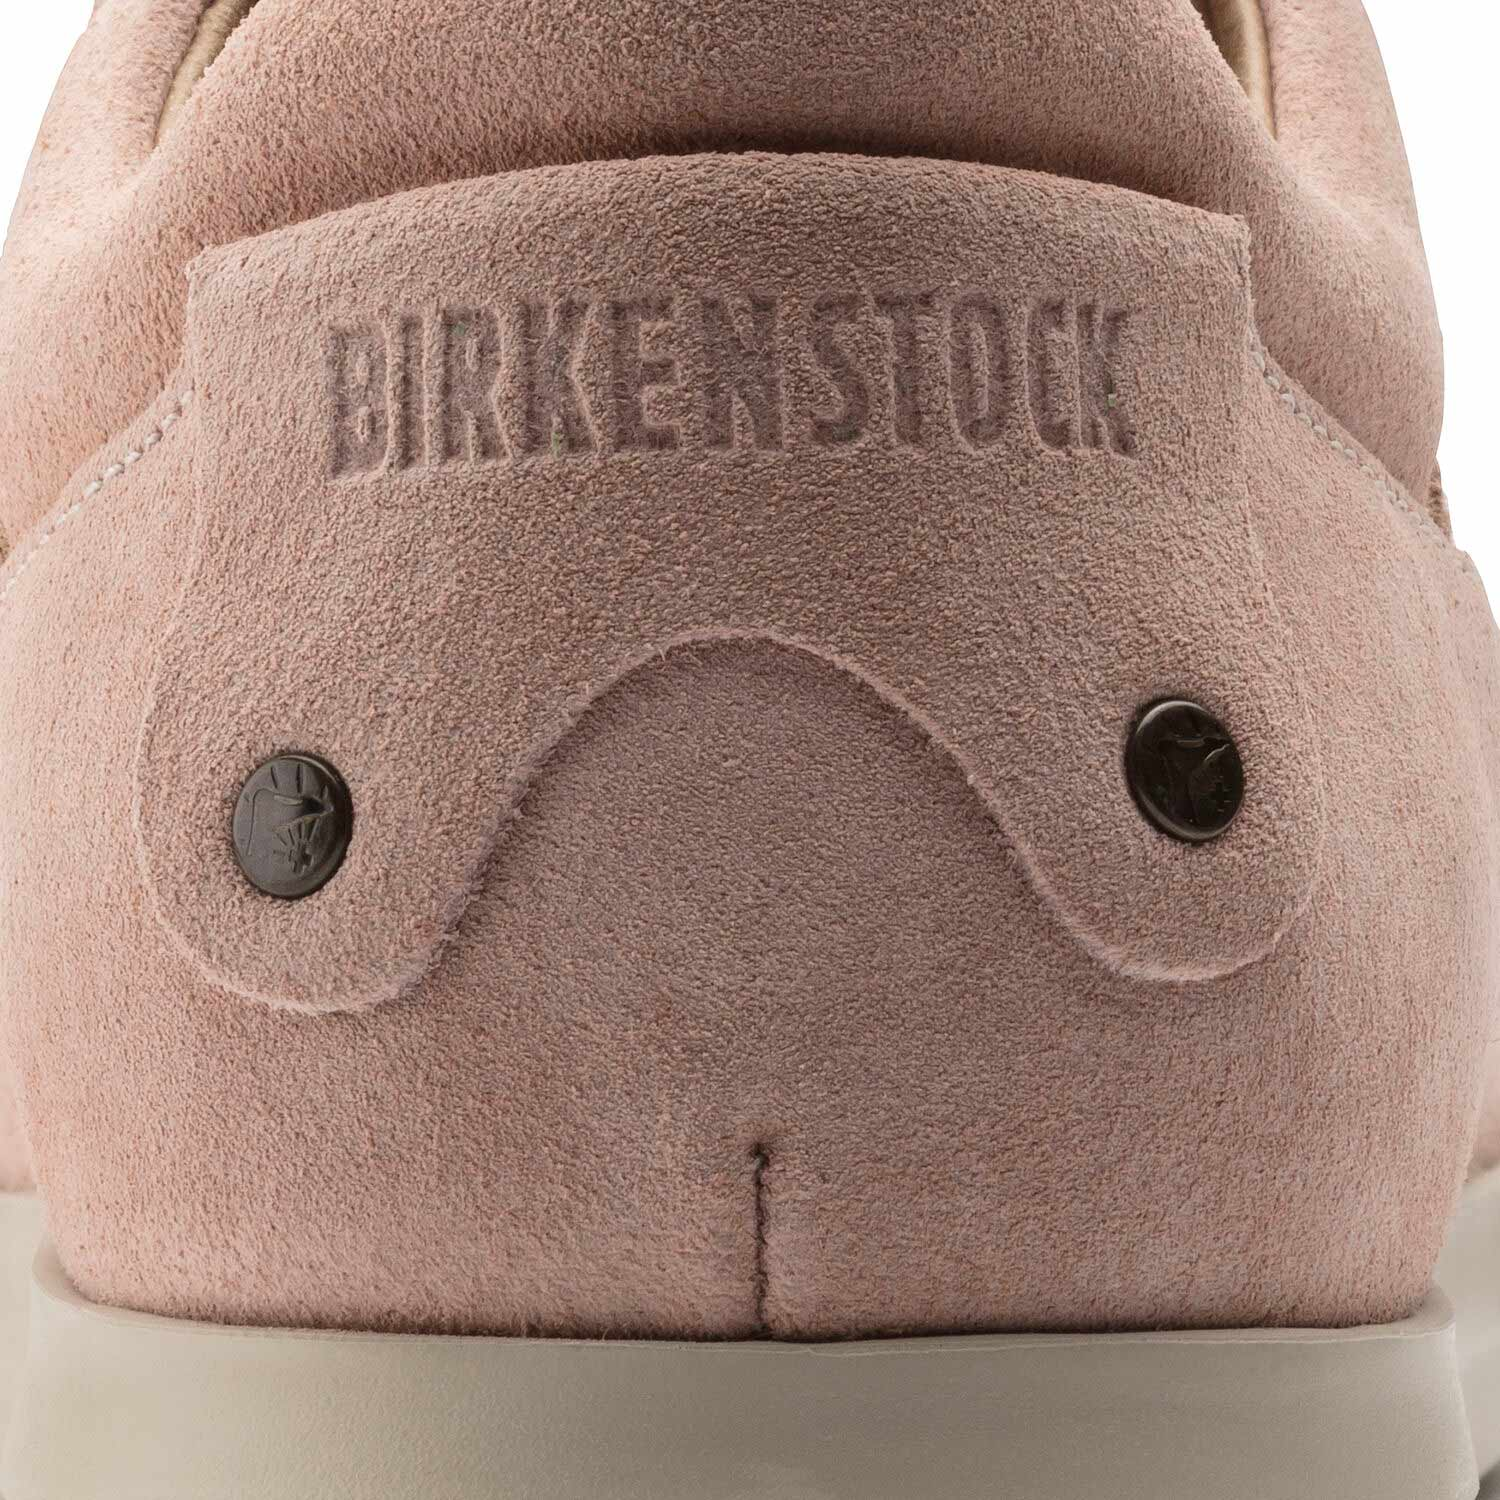 Birkenstock Cincinnati Women VL Rose Regular